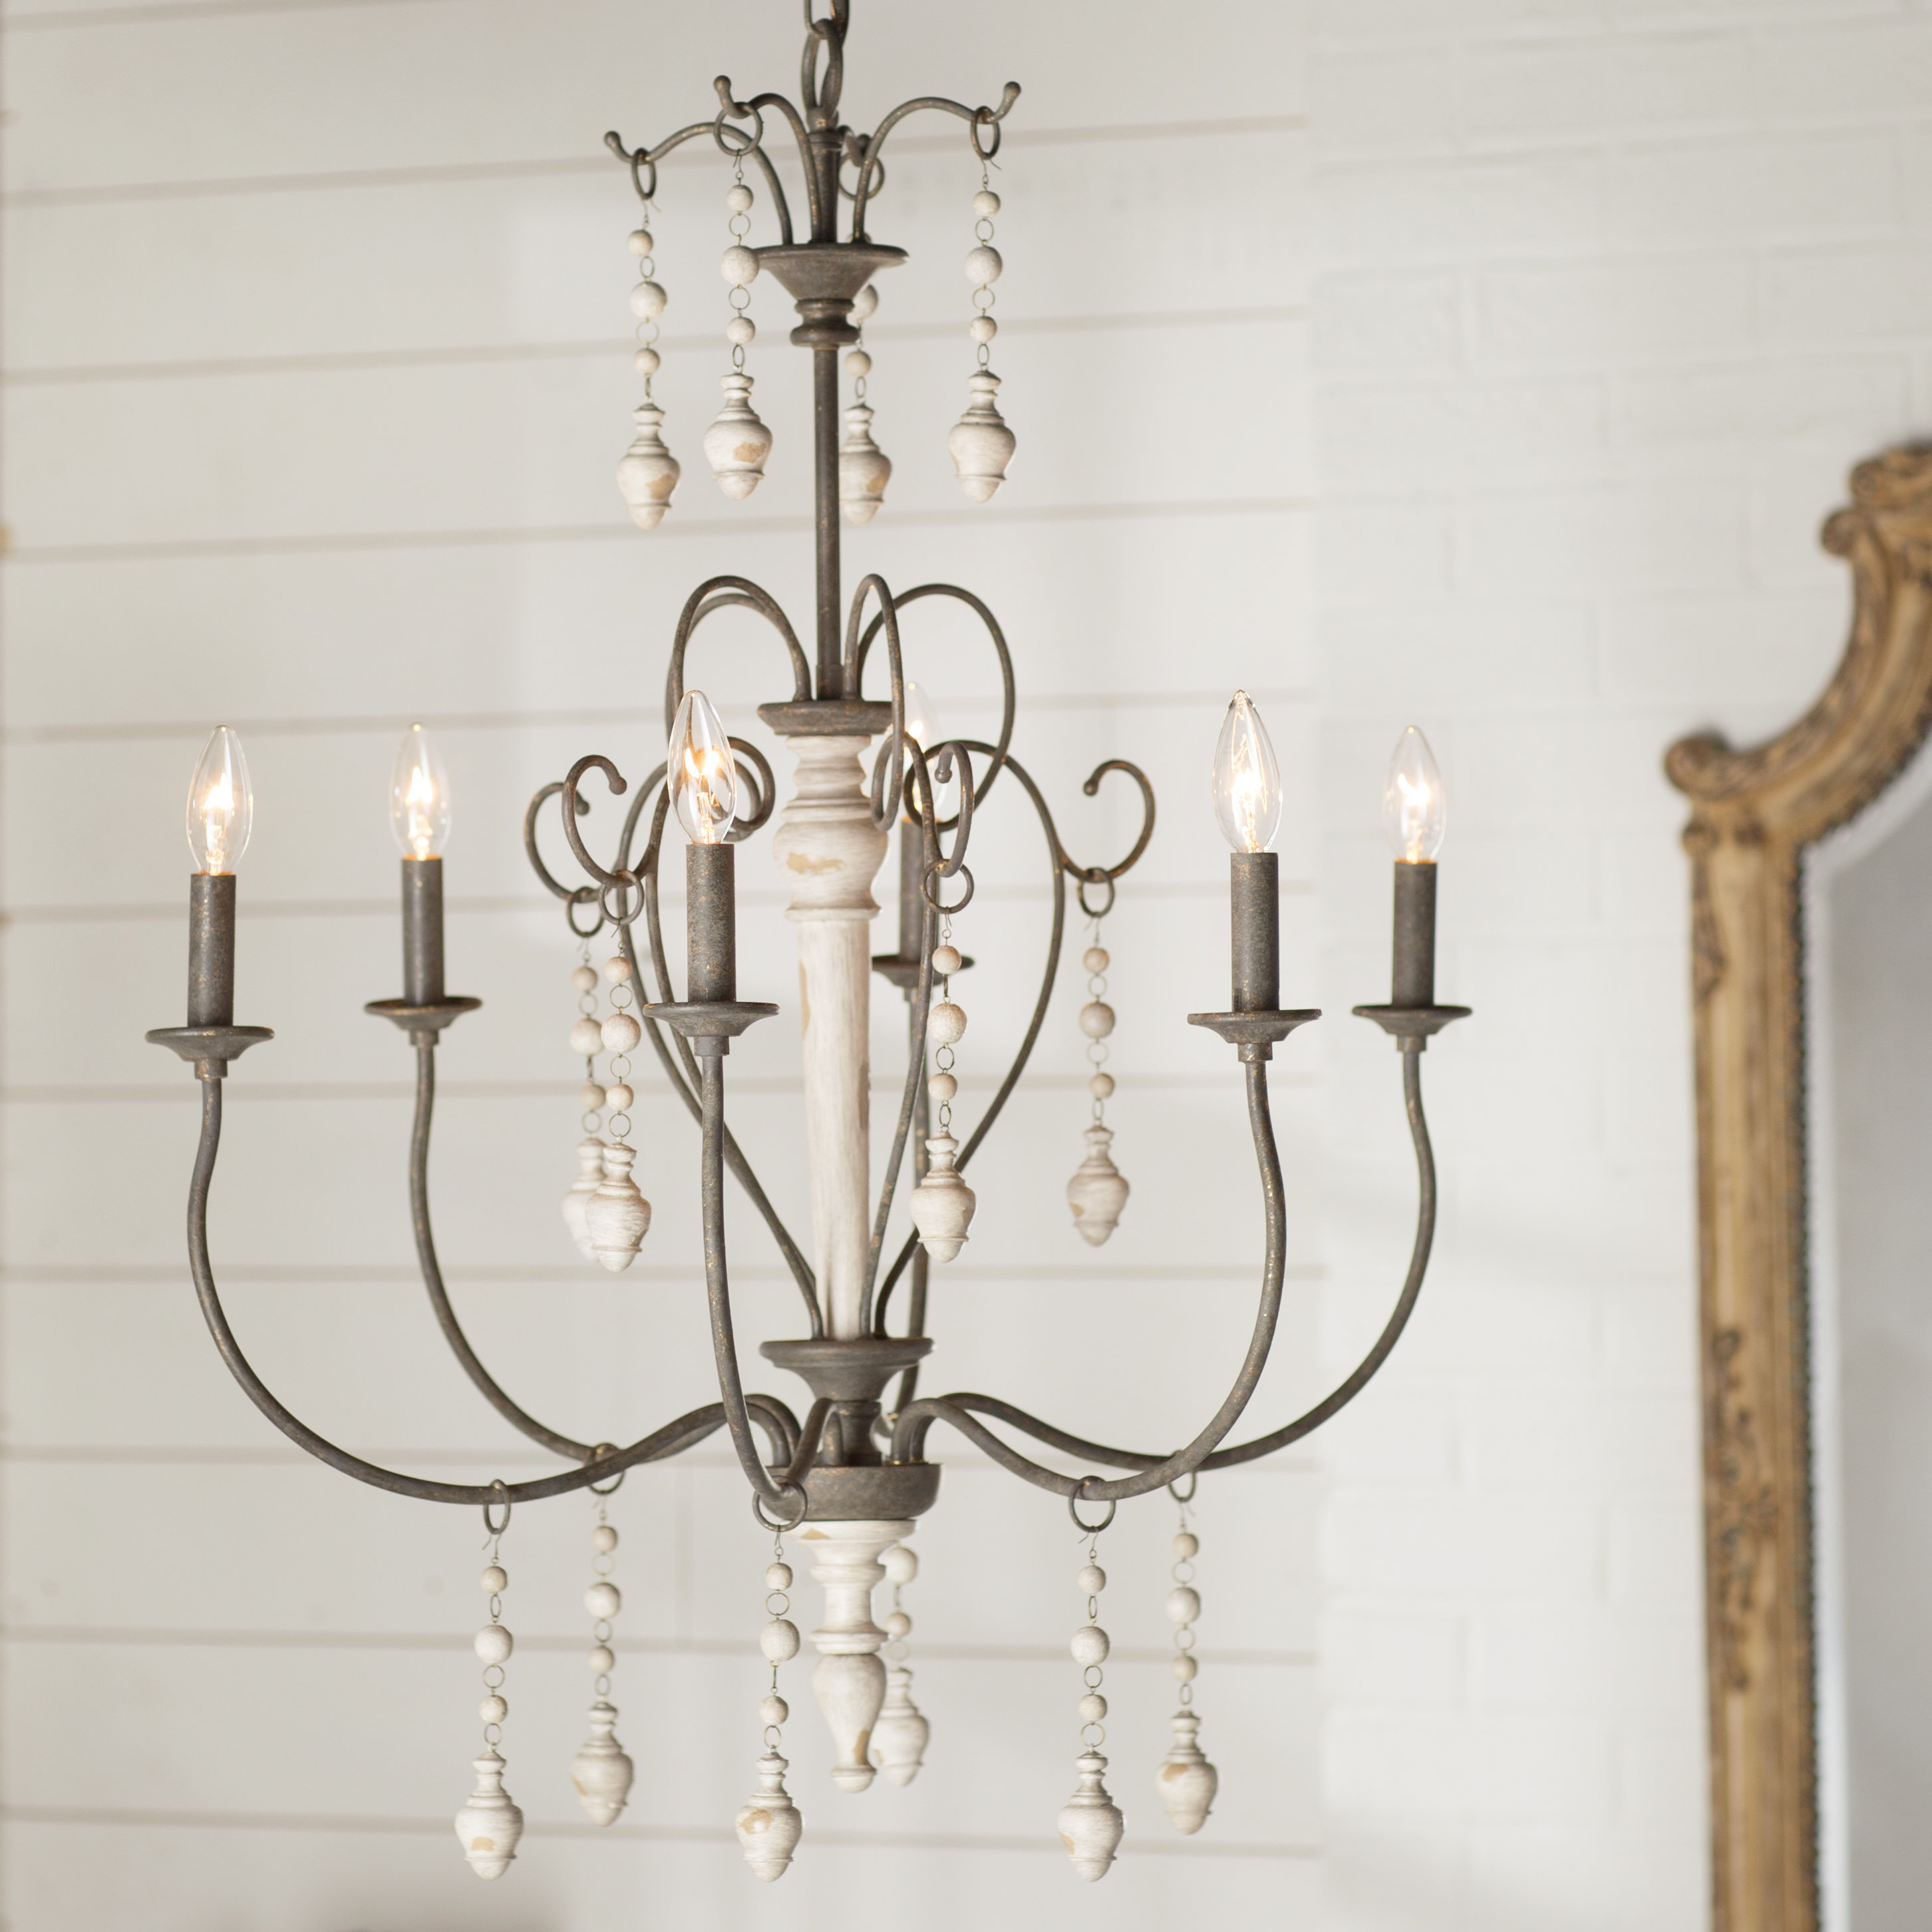 2020 Armande Candle Style Chandeliers Throughout Bouchette Traditional 6 Light Candle Style Chandelier (View 12 of 25)